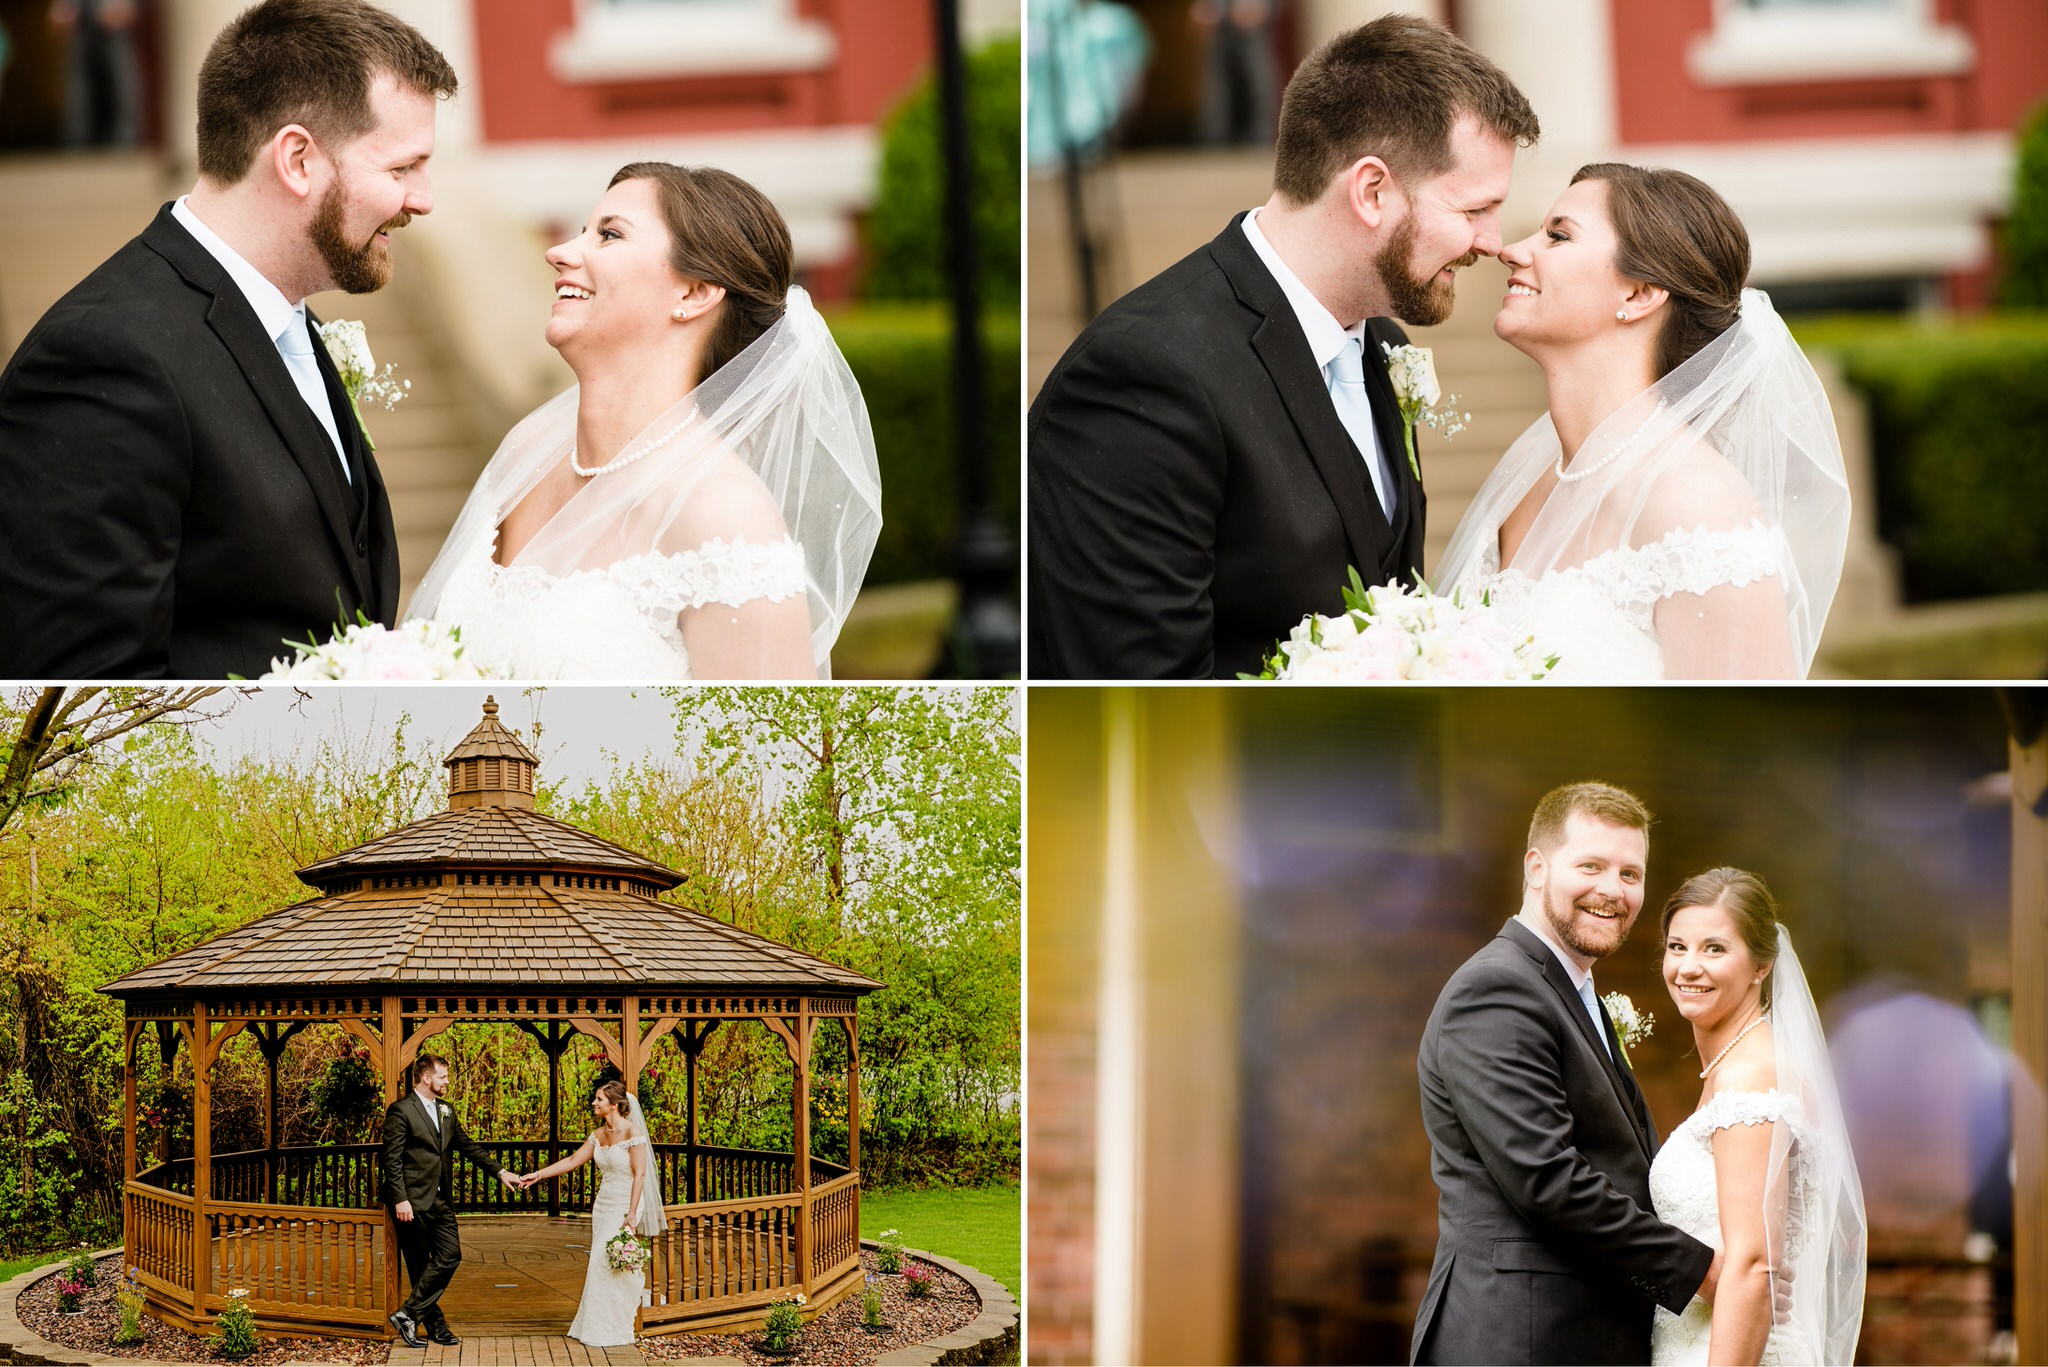 Some candid moments for the bride and groom in between raindrops.